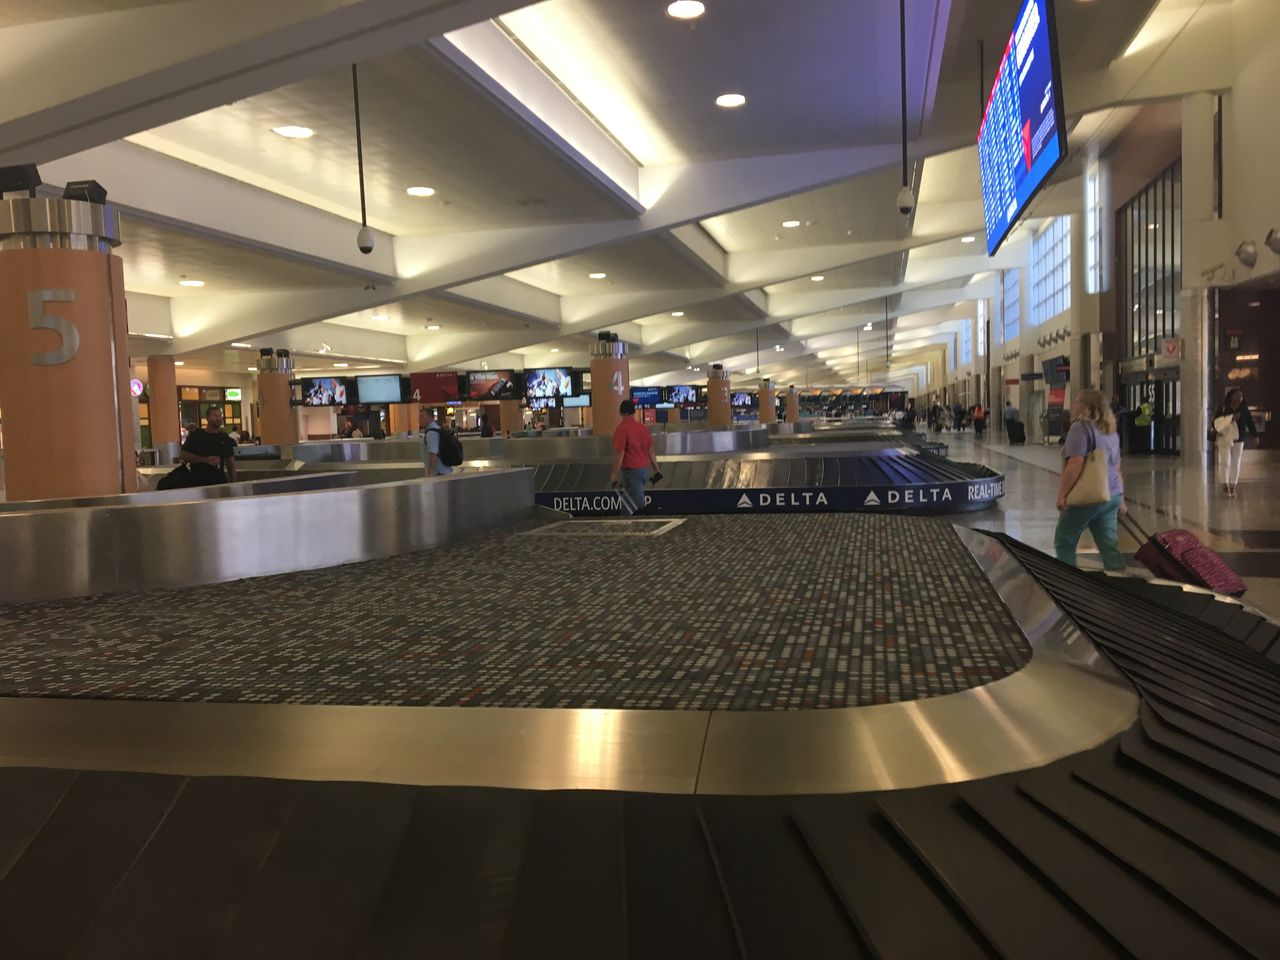 Review of Delta Air Lines flight from Atlanta to New York in